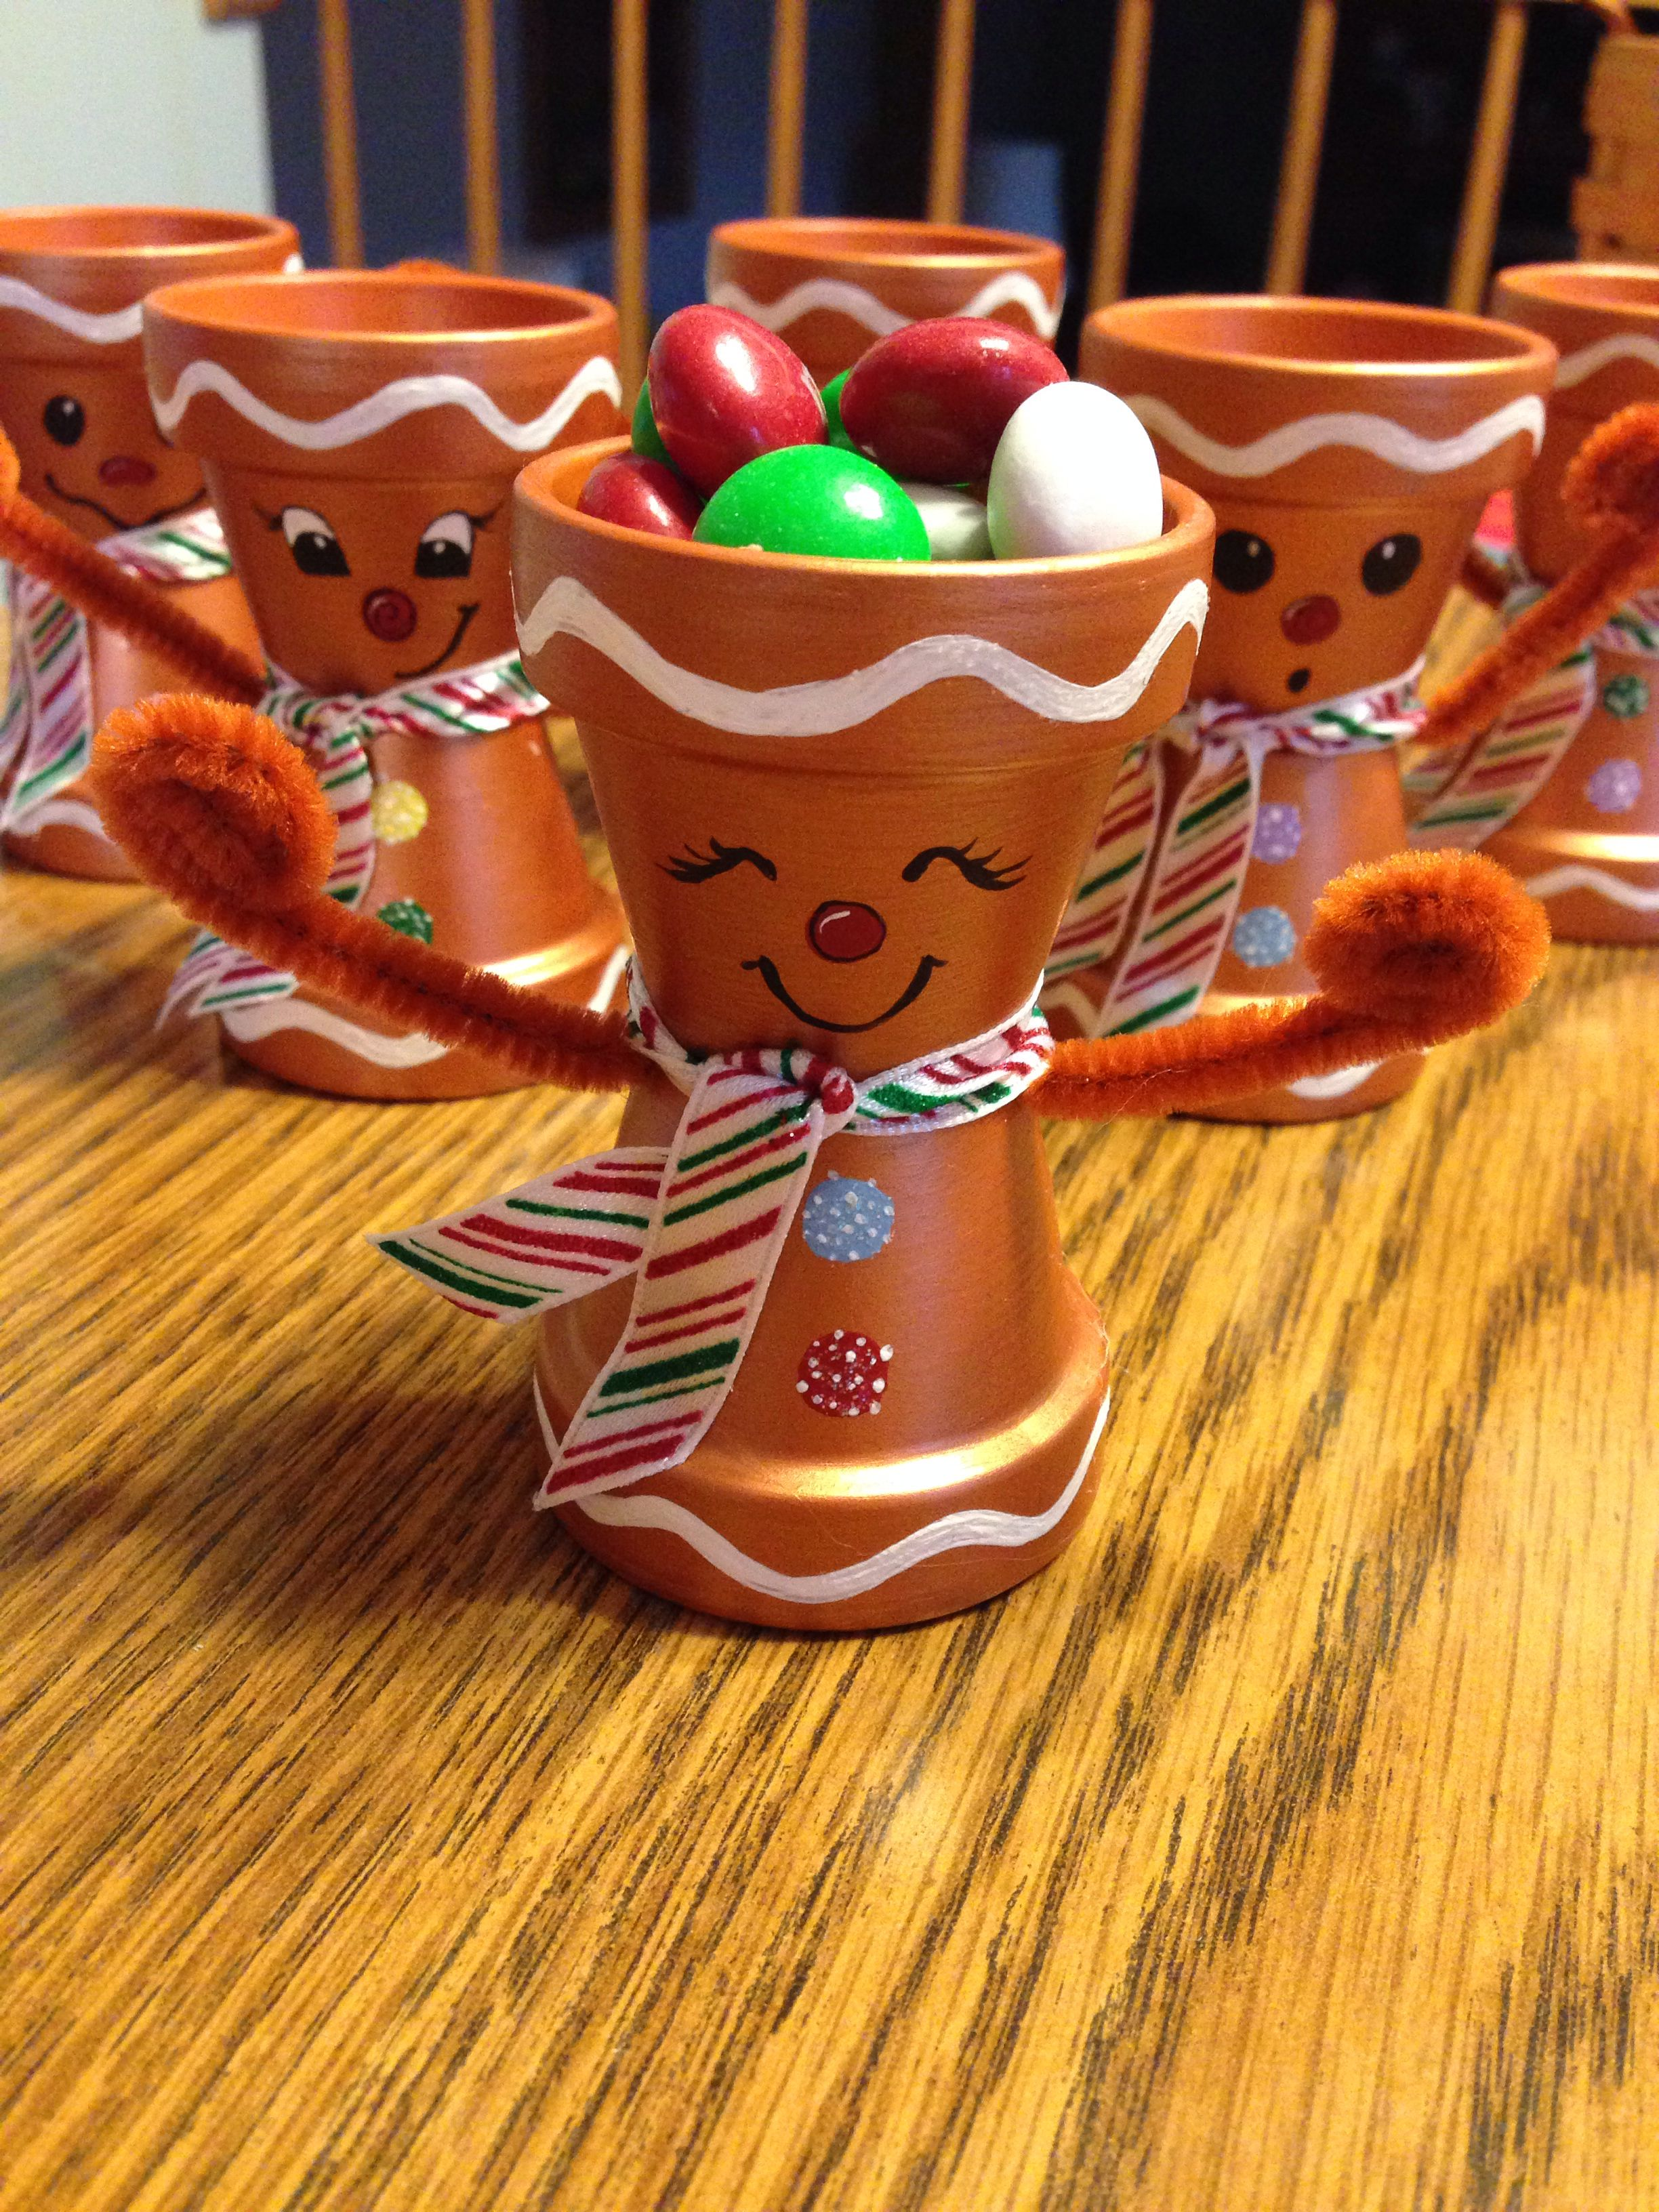 Clay Pot Gingerbread Men Quick And Easy For A Holiday Craft Paint Pots Green Make Into Grinch Night